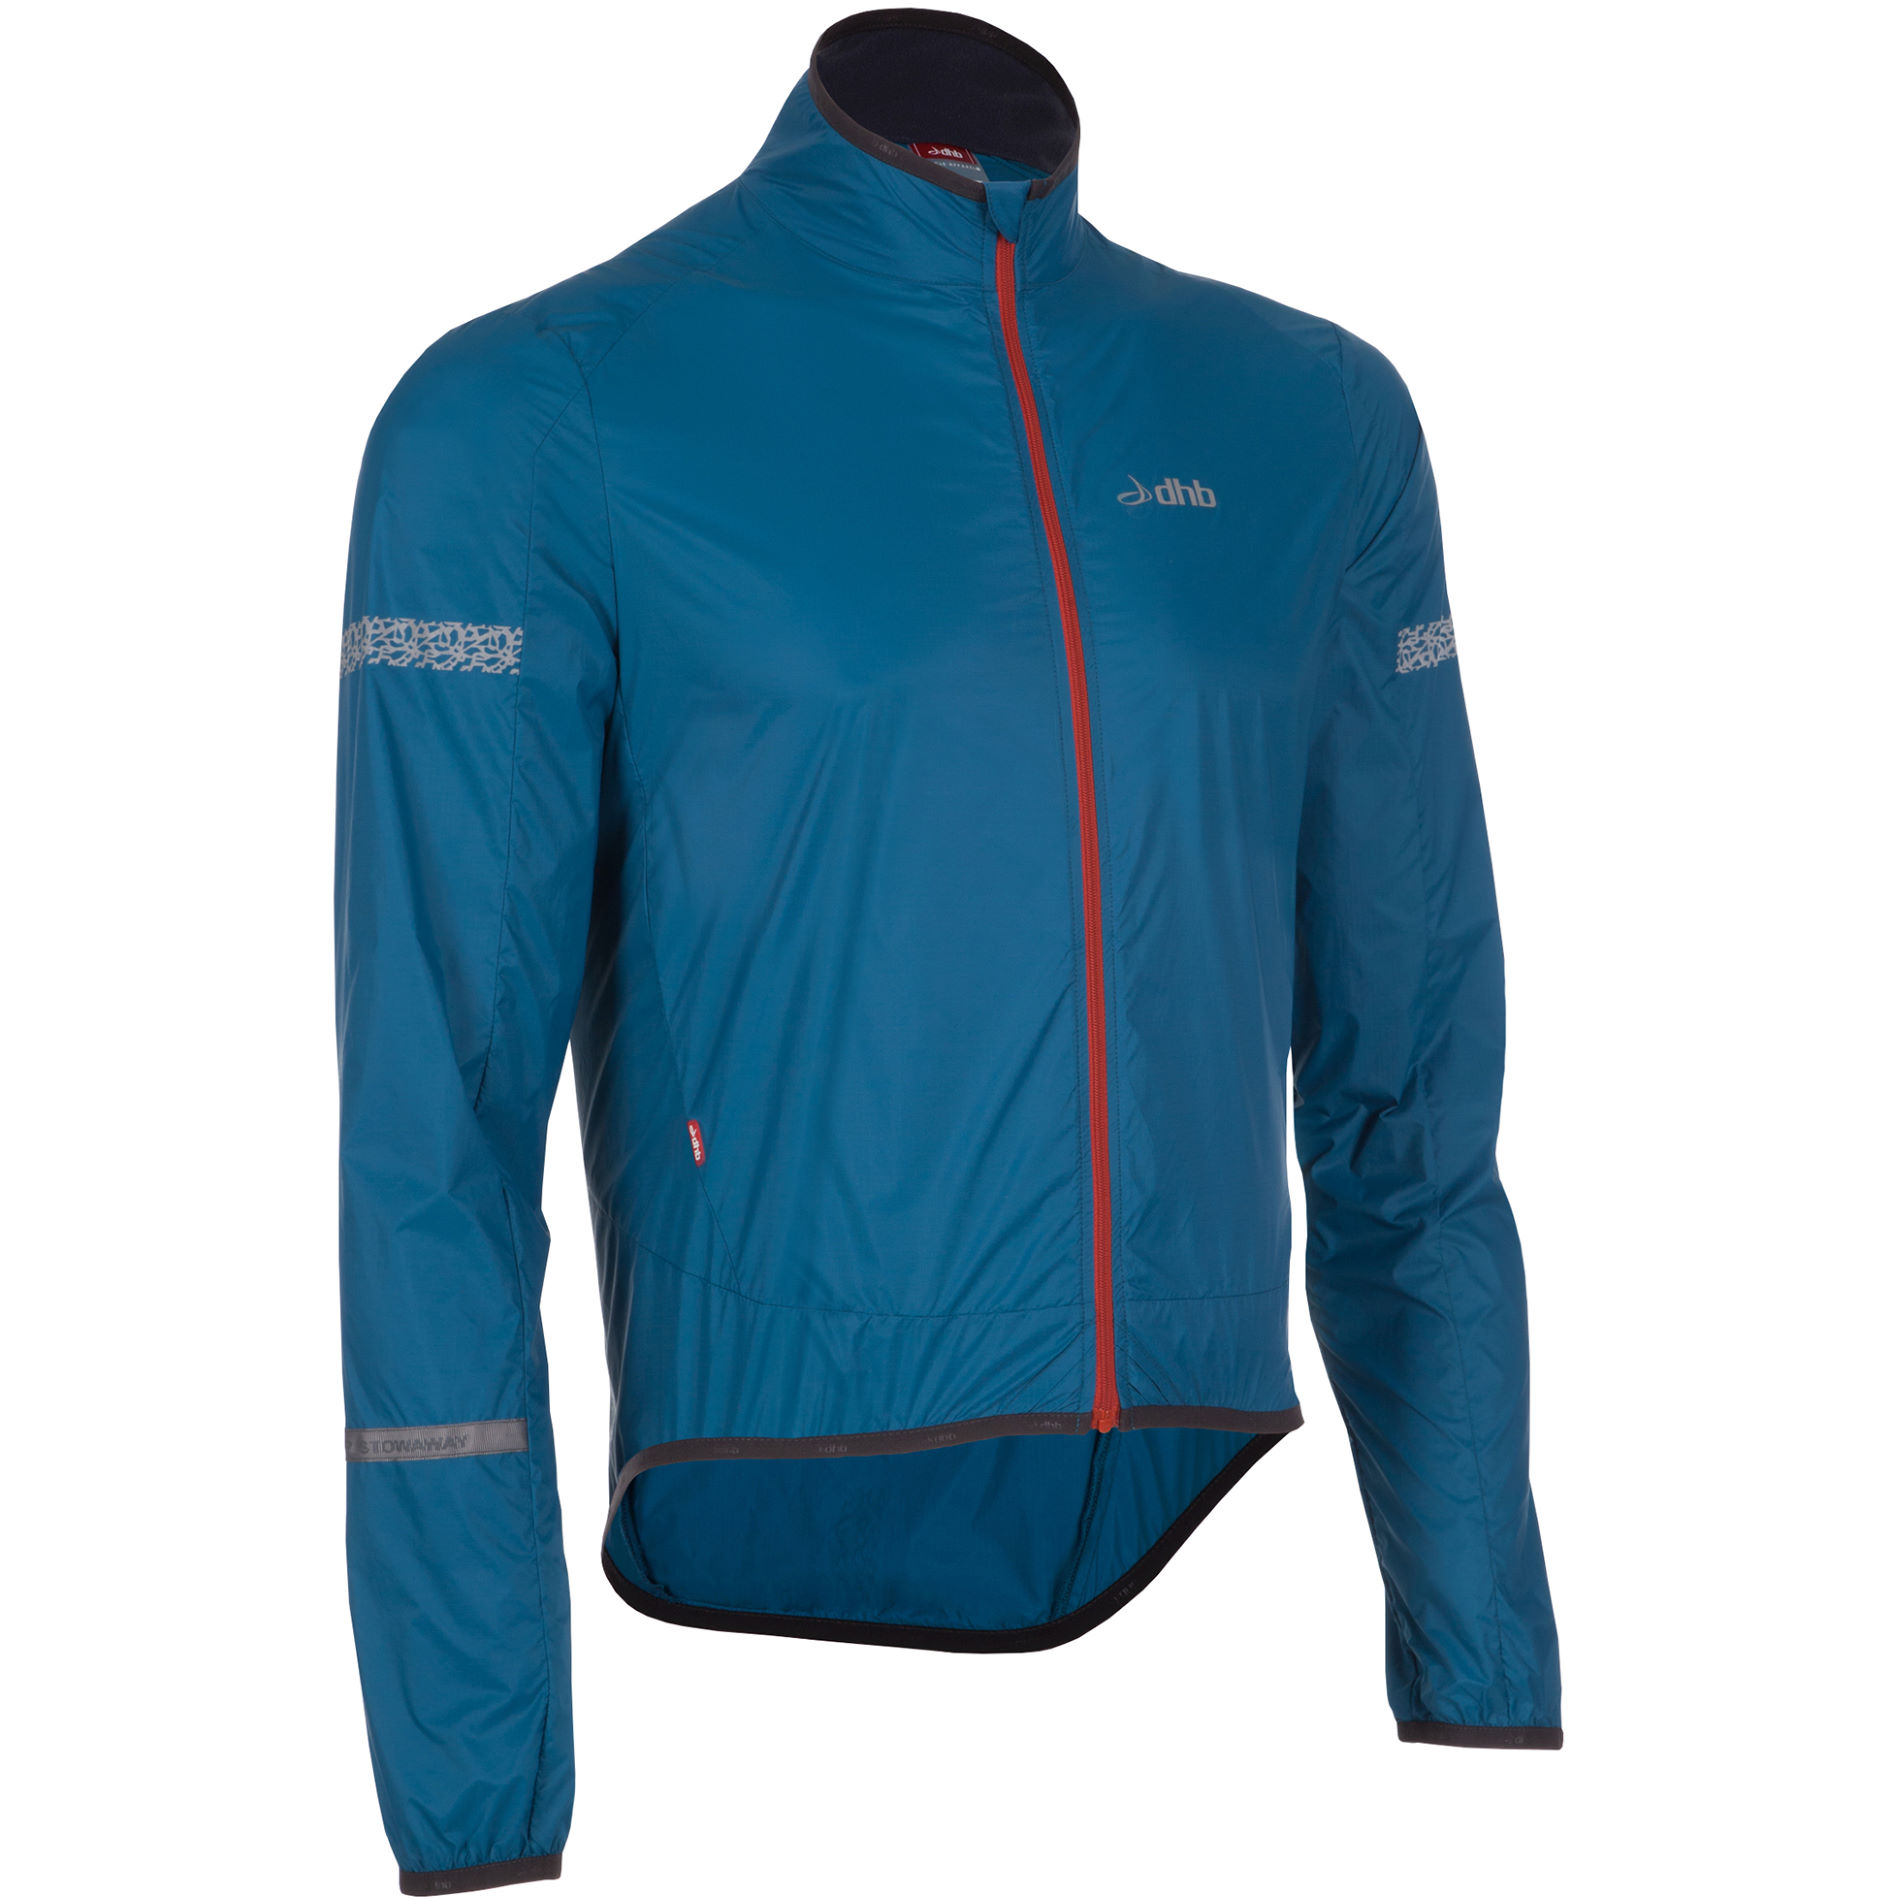 Shop men's windproof jackets from DICK'S Sporting Goods today. If you find a lower price on men's windproof jackets somewhere else, we'll match it with our Best Price Guarantee! Check out customer reviews on men's windproof jackets and save big on a variety of products. Plus, ScoreCard members earn points on every purchase.